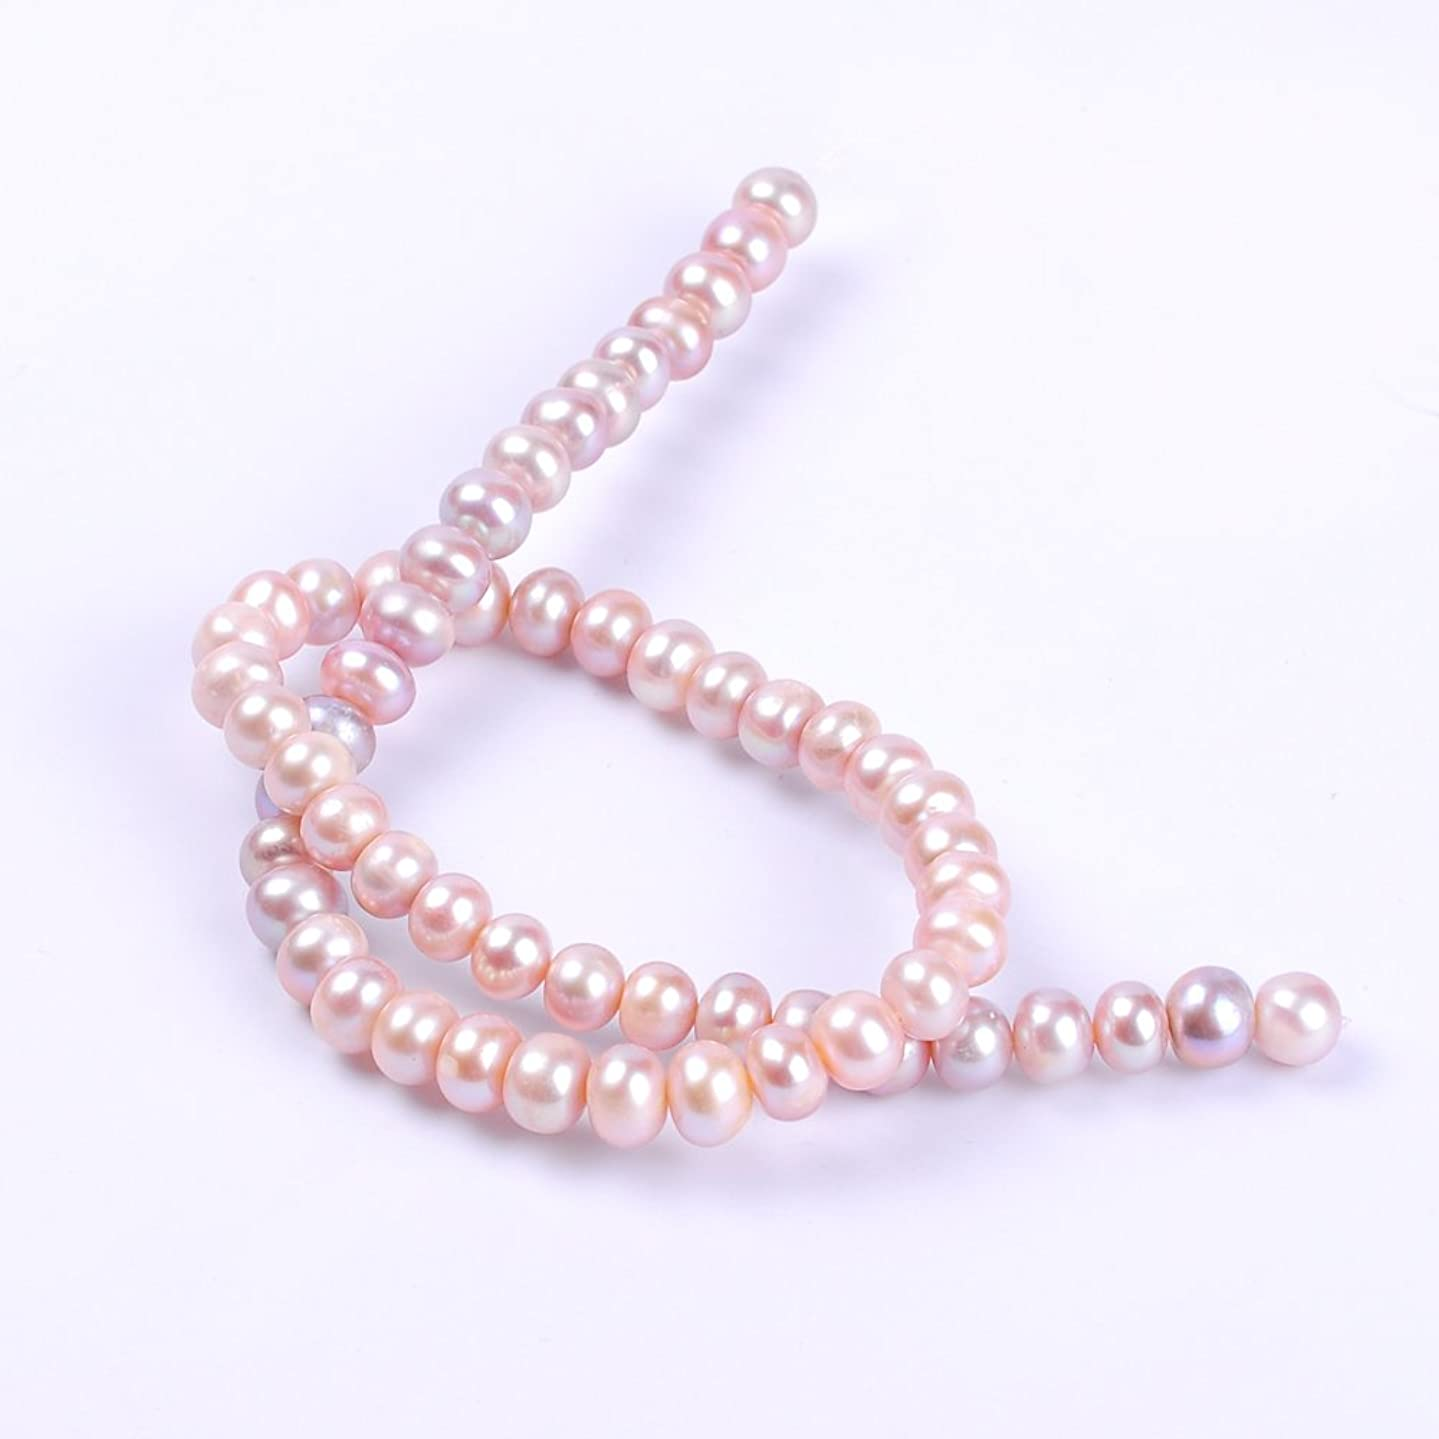 Ruilong AAAA Screw Thread Abacus Natural Freshwater Pearl Loose Beads For Jewelry Making (8-9MM Pink)